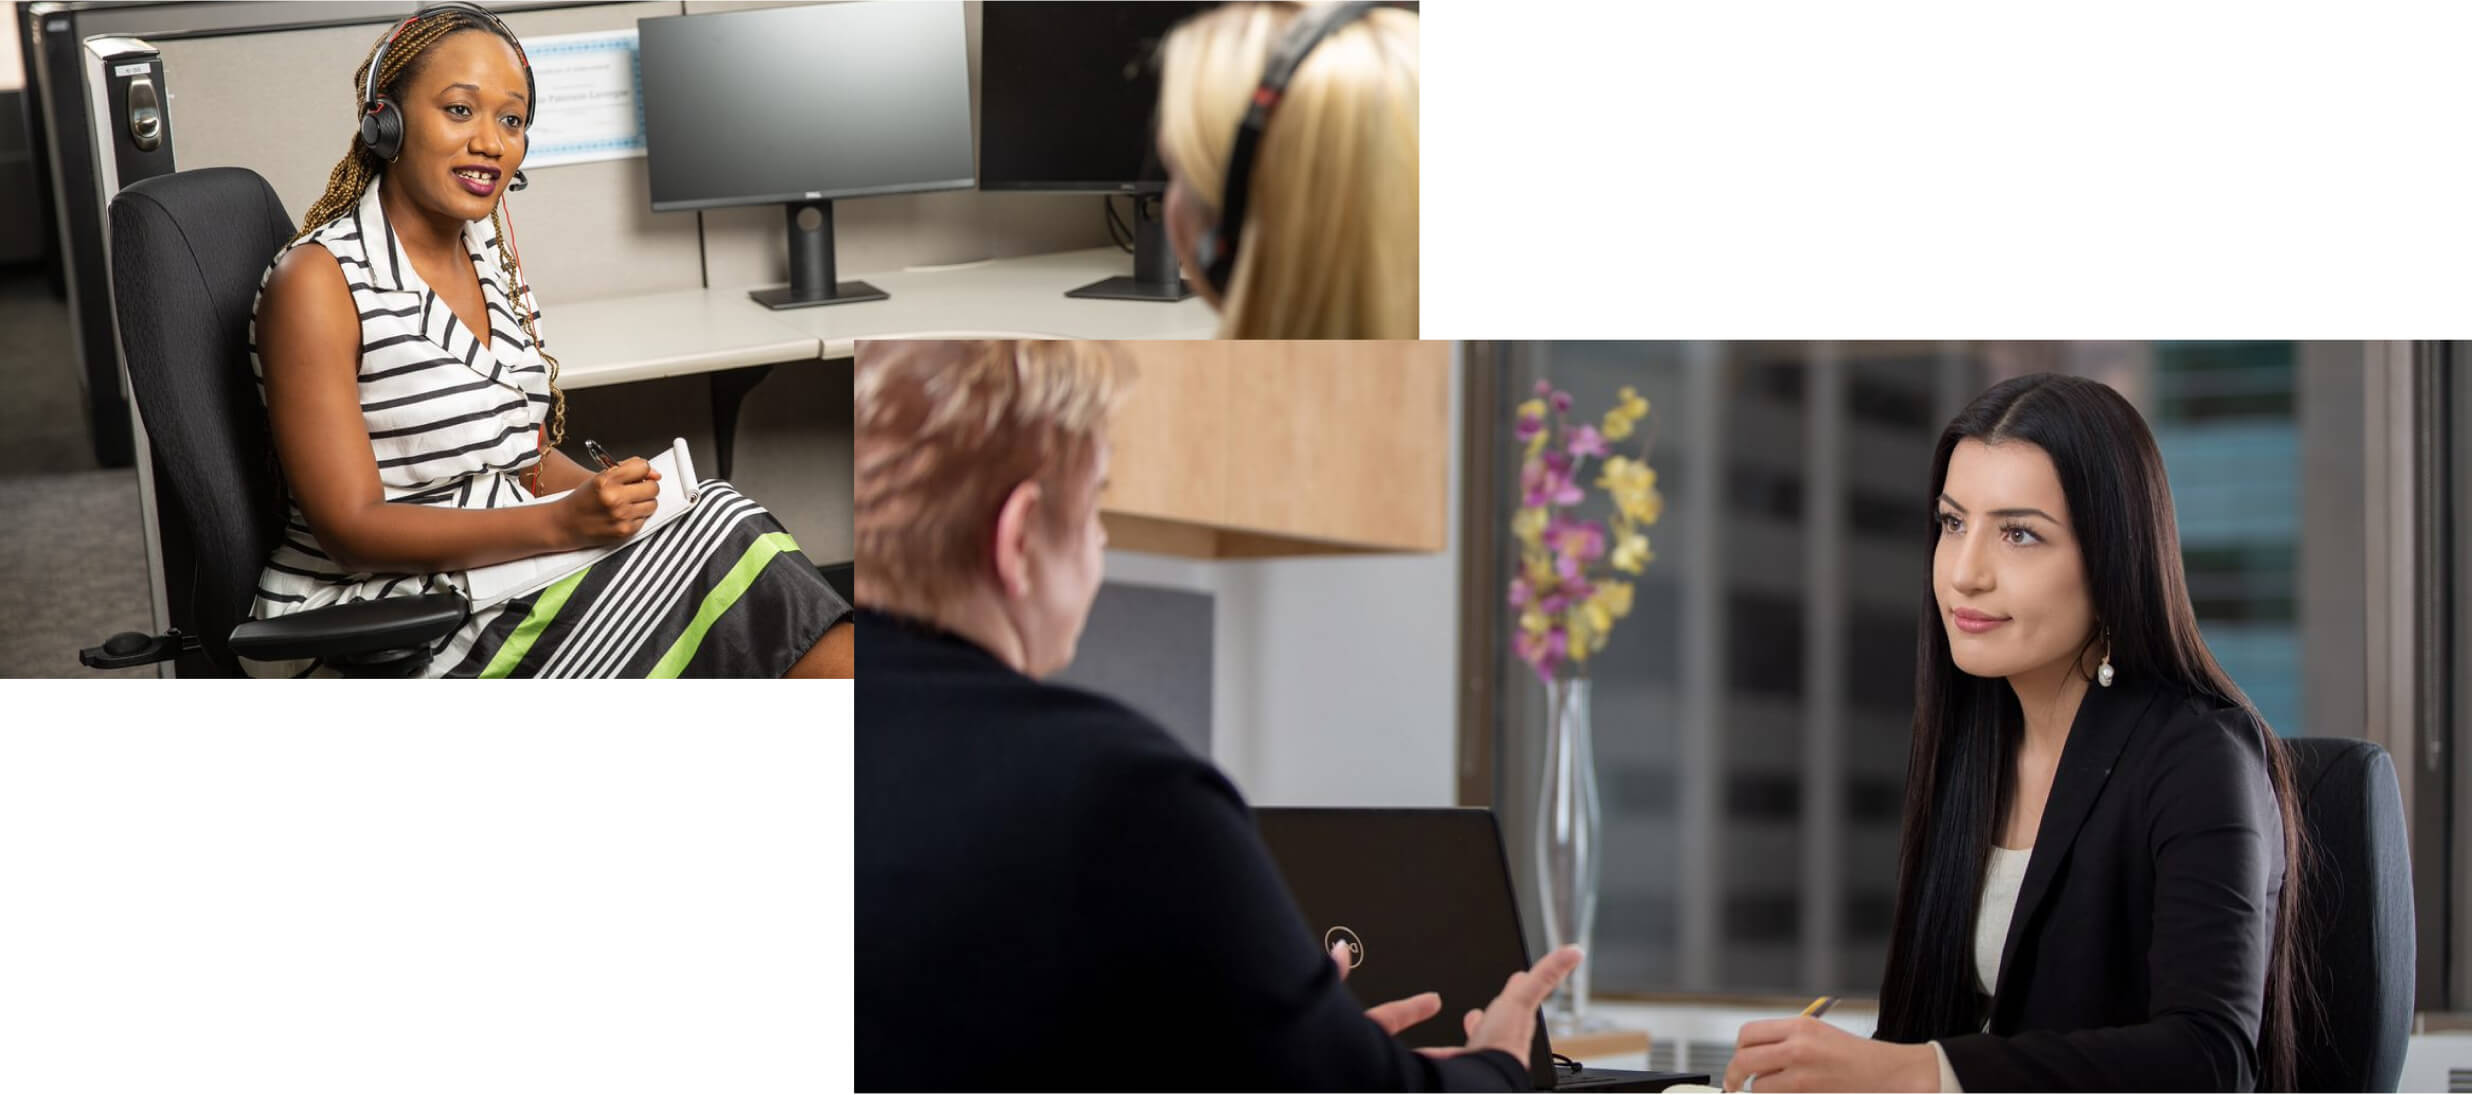 From left to right: two women facing each other and chatting in an office environment. Two women talking to each other while one woman is taking notes in an office.